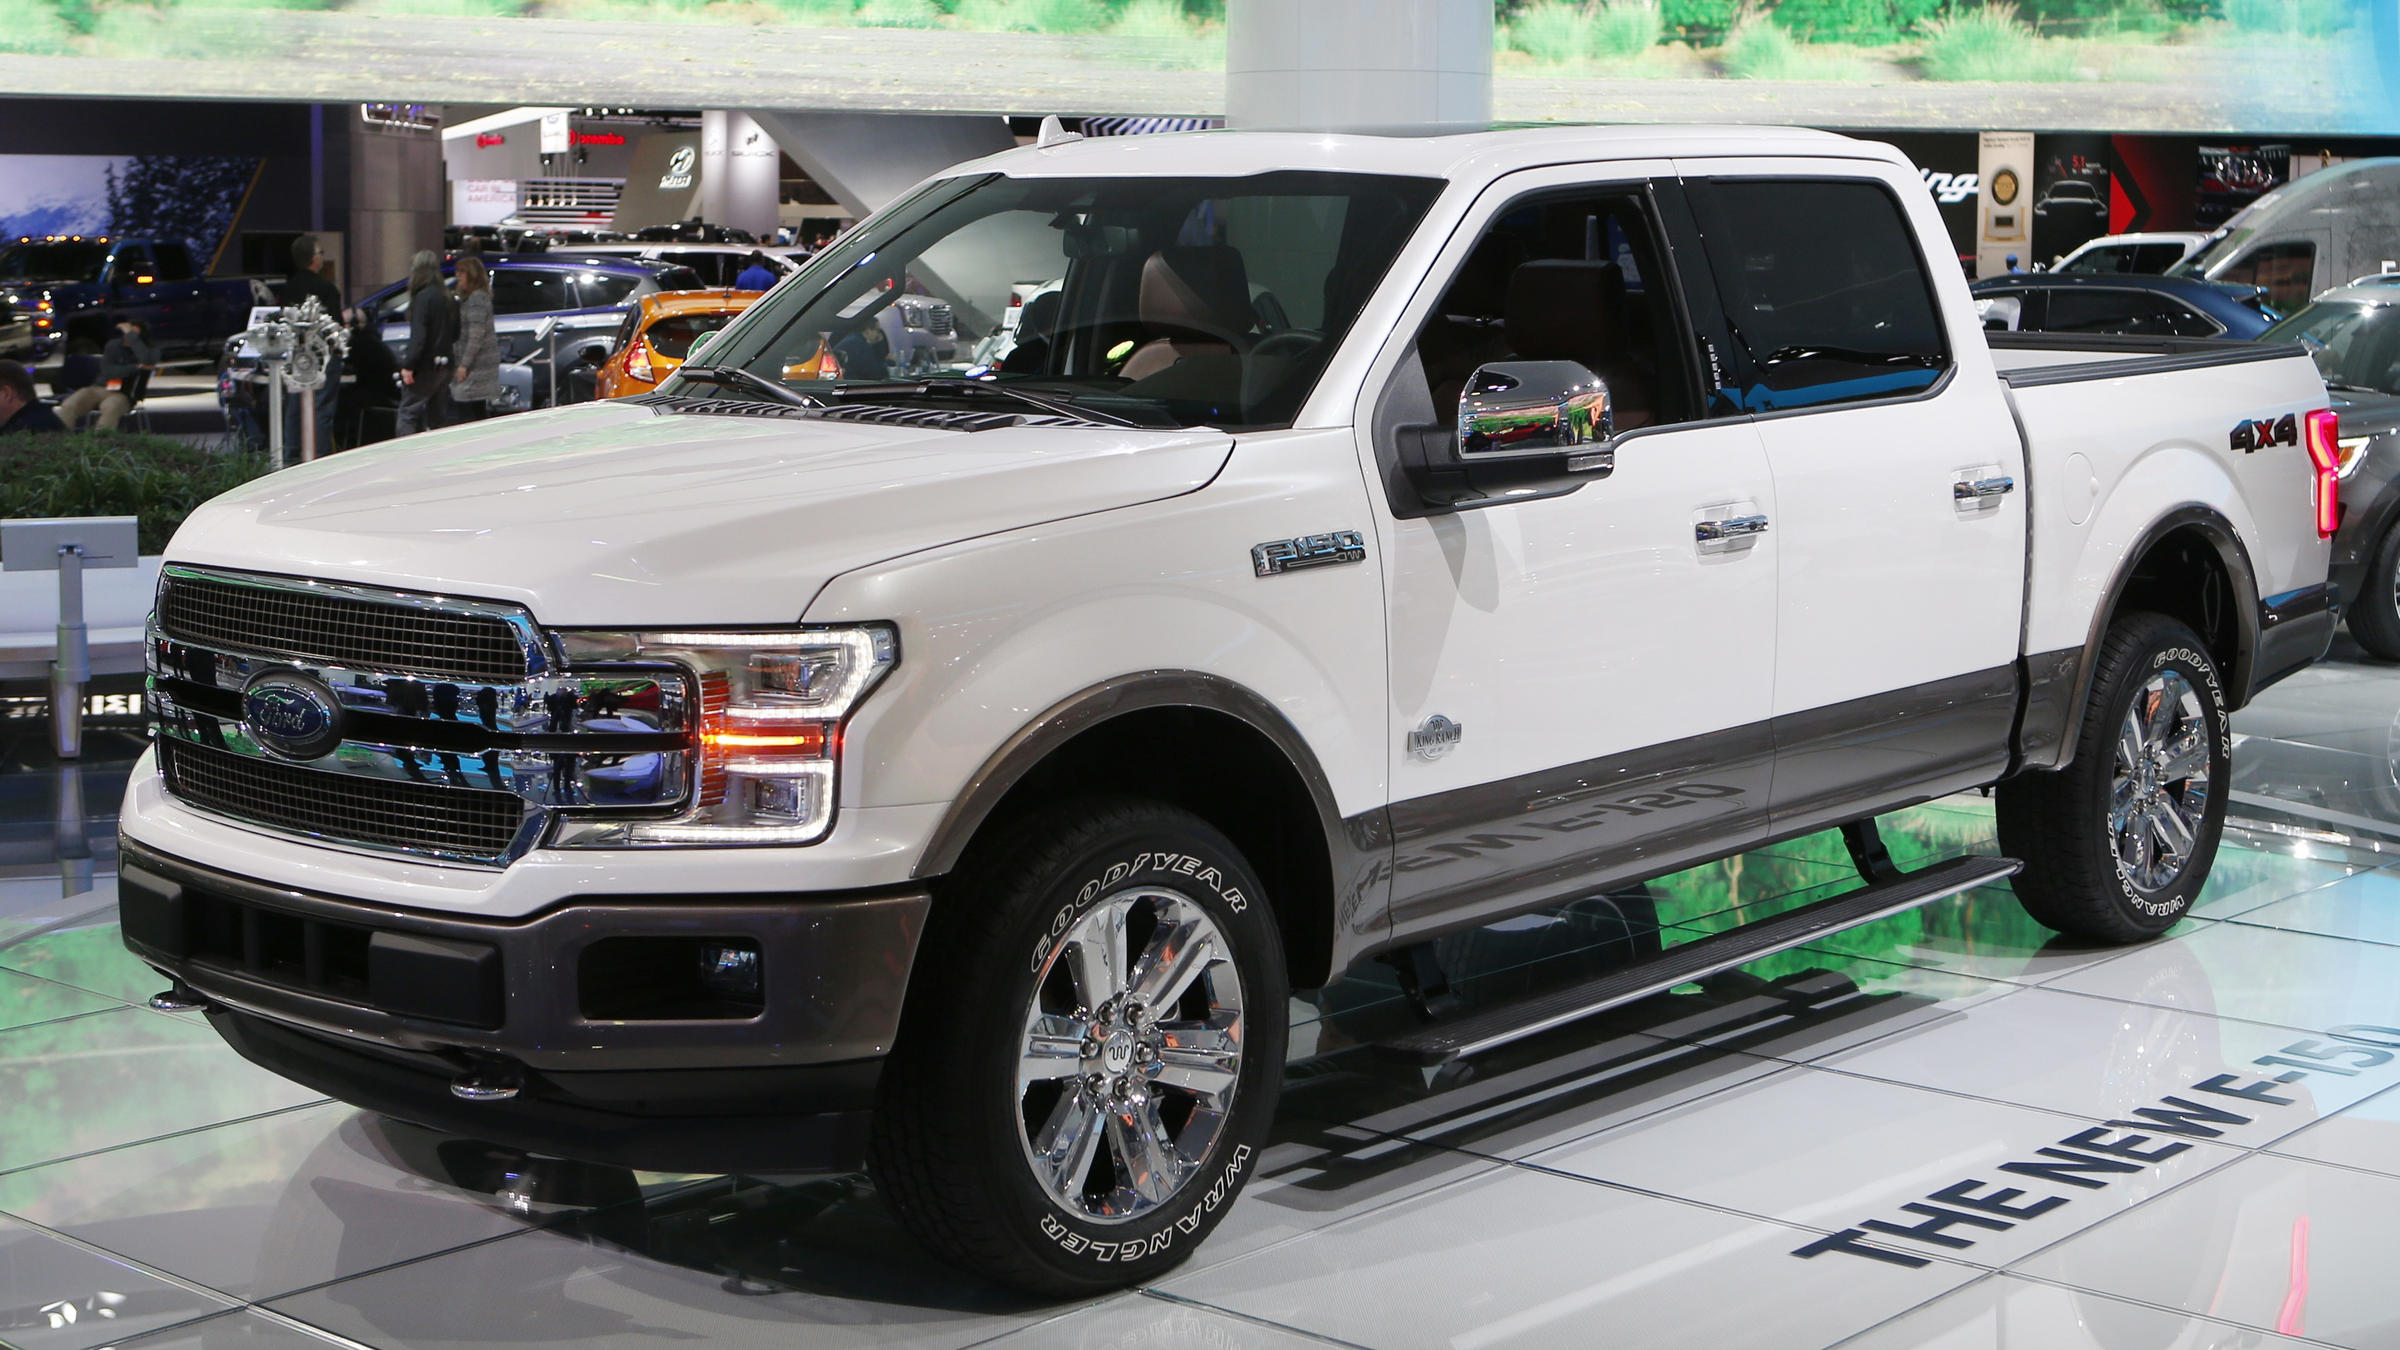 2018 Models Of The Ford F 150 Pickup Truck Are Included In A New Recall That Was Triggered By Potential Problems With Vehicles Parking Equipment